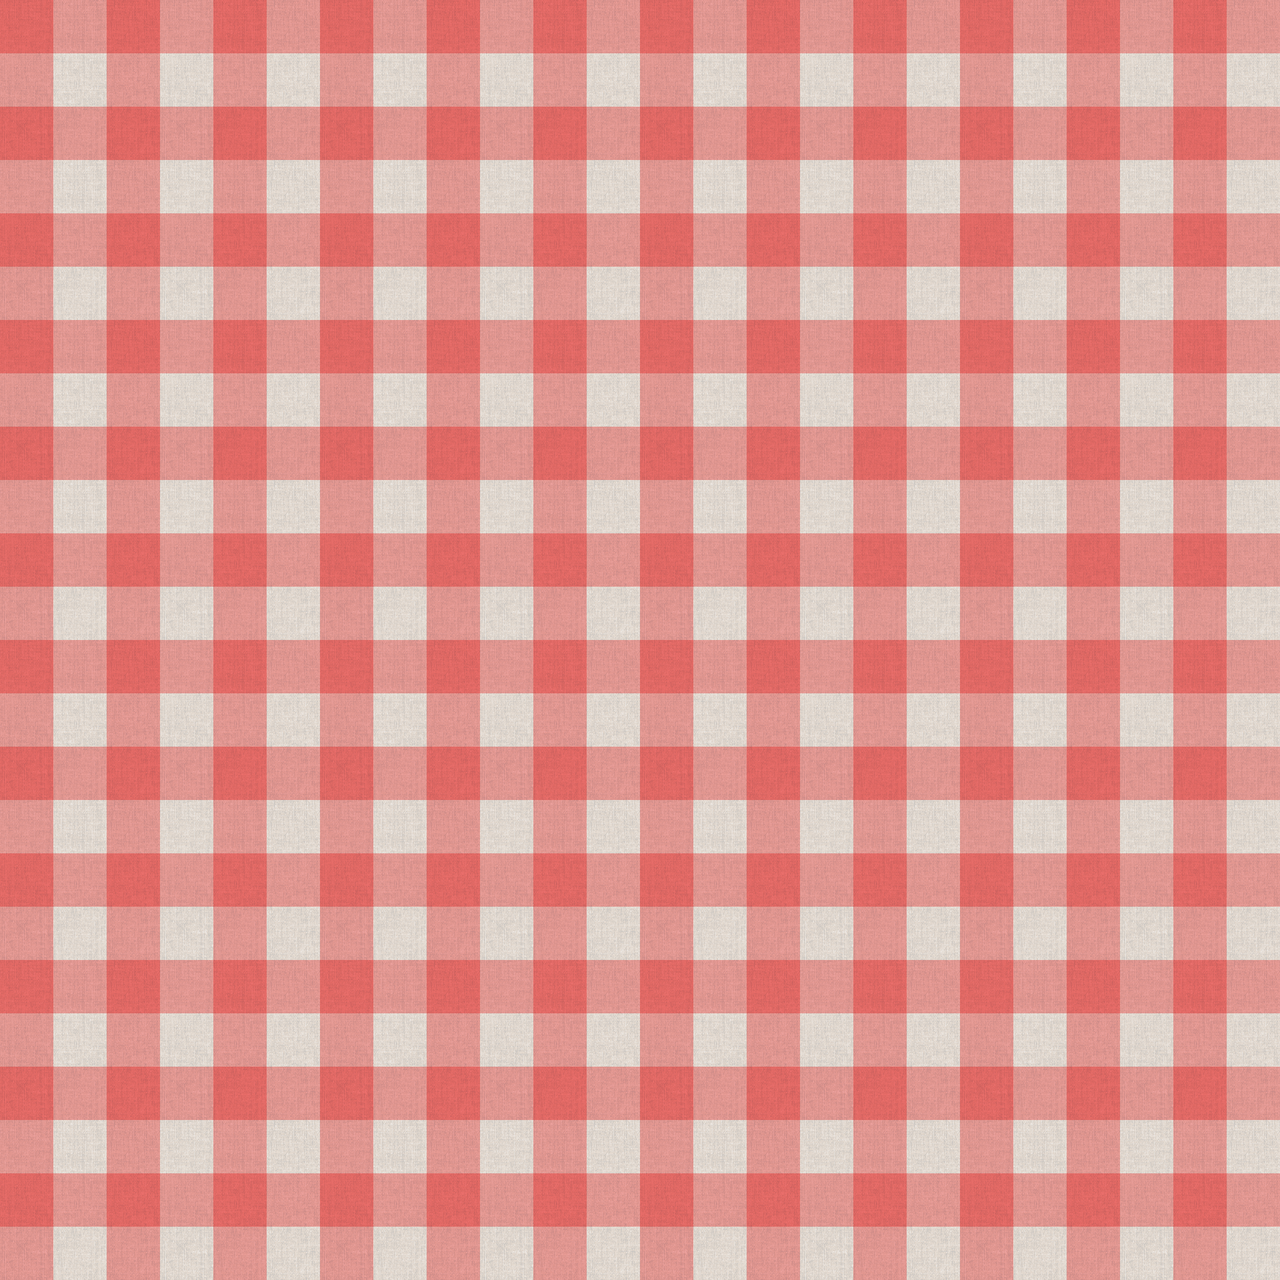 Red White Kitchen Table Cloth Texture